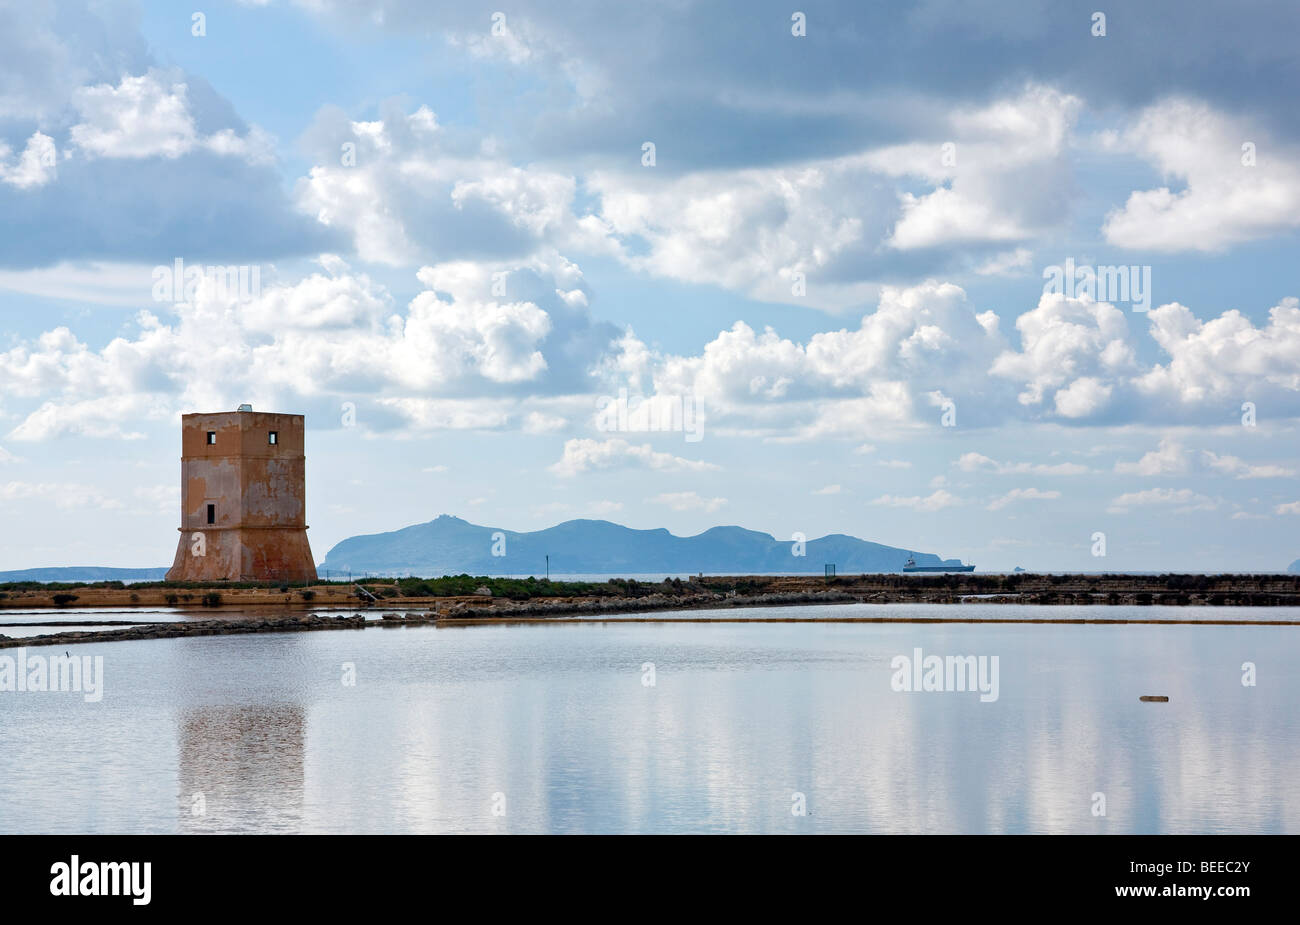 Saltwater basin and a guard tower, salines near Trapani, Sicily, Italy, Southern Europe - Stock Image